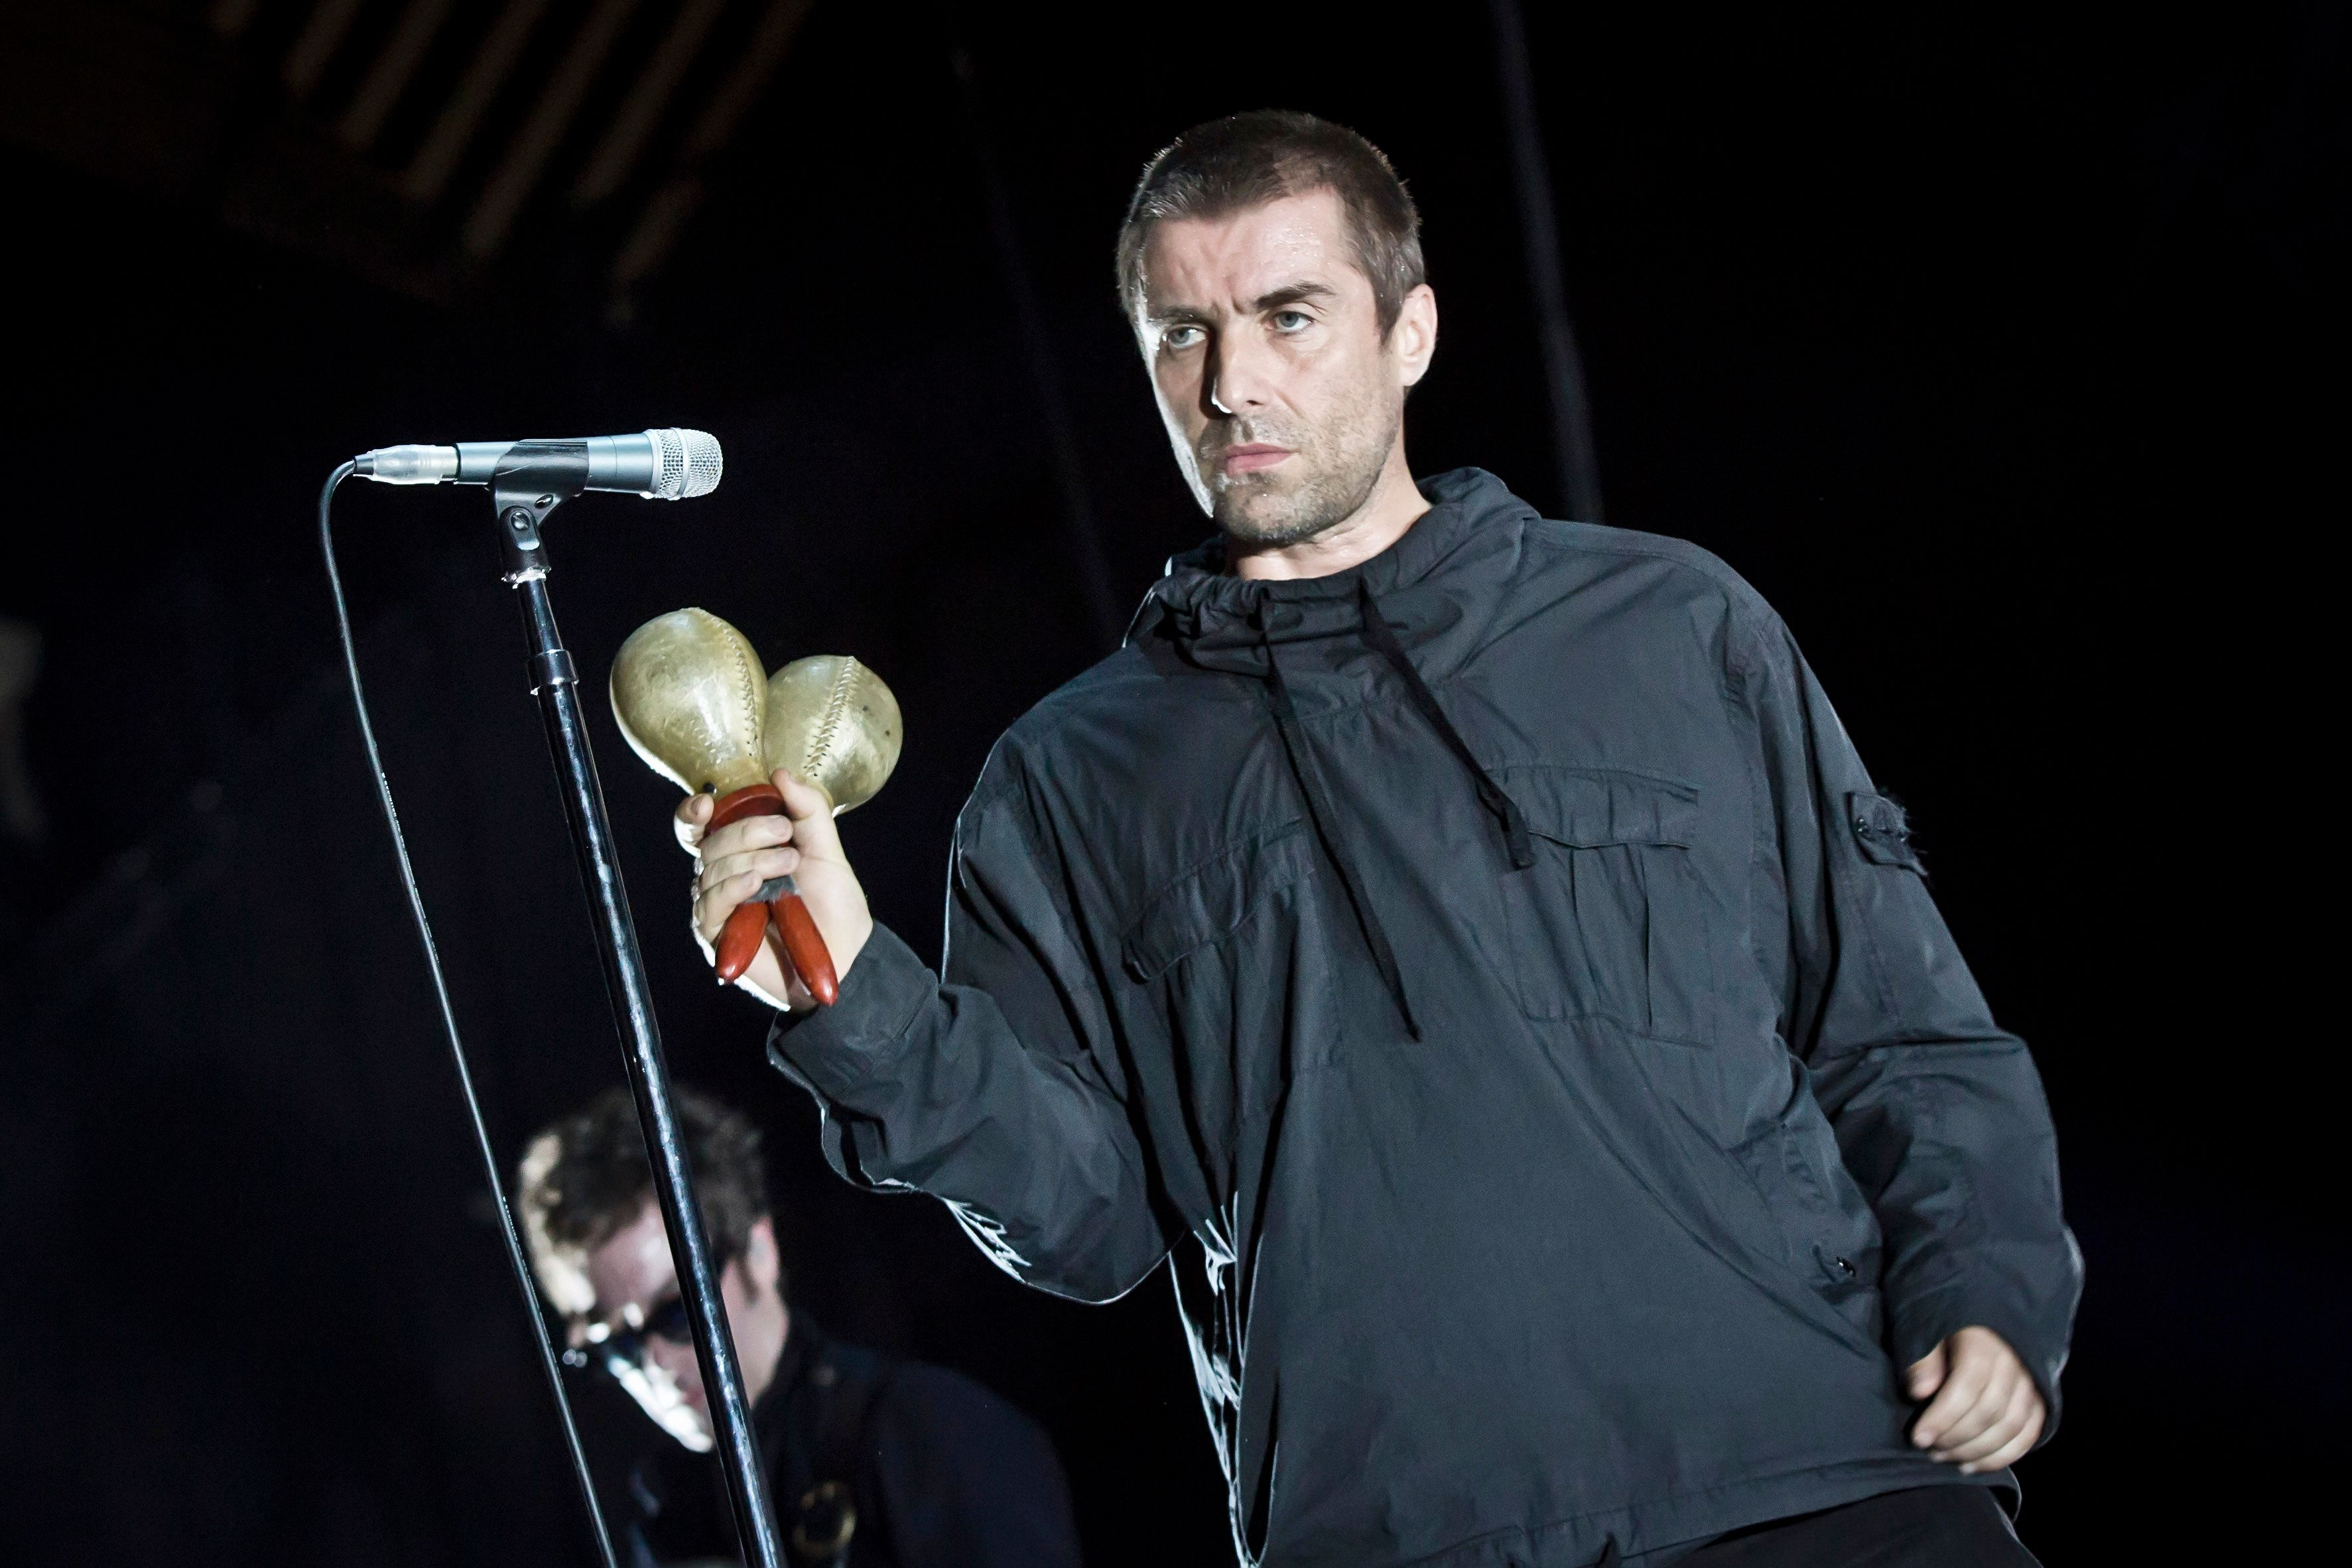 Liam Gallagher's change of heart: James Corden is a 'fine chap'